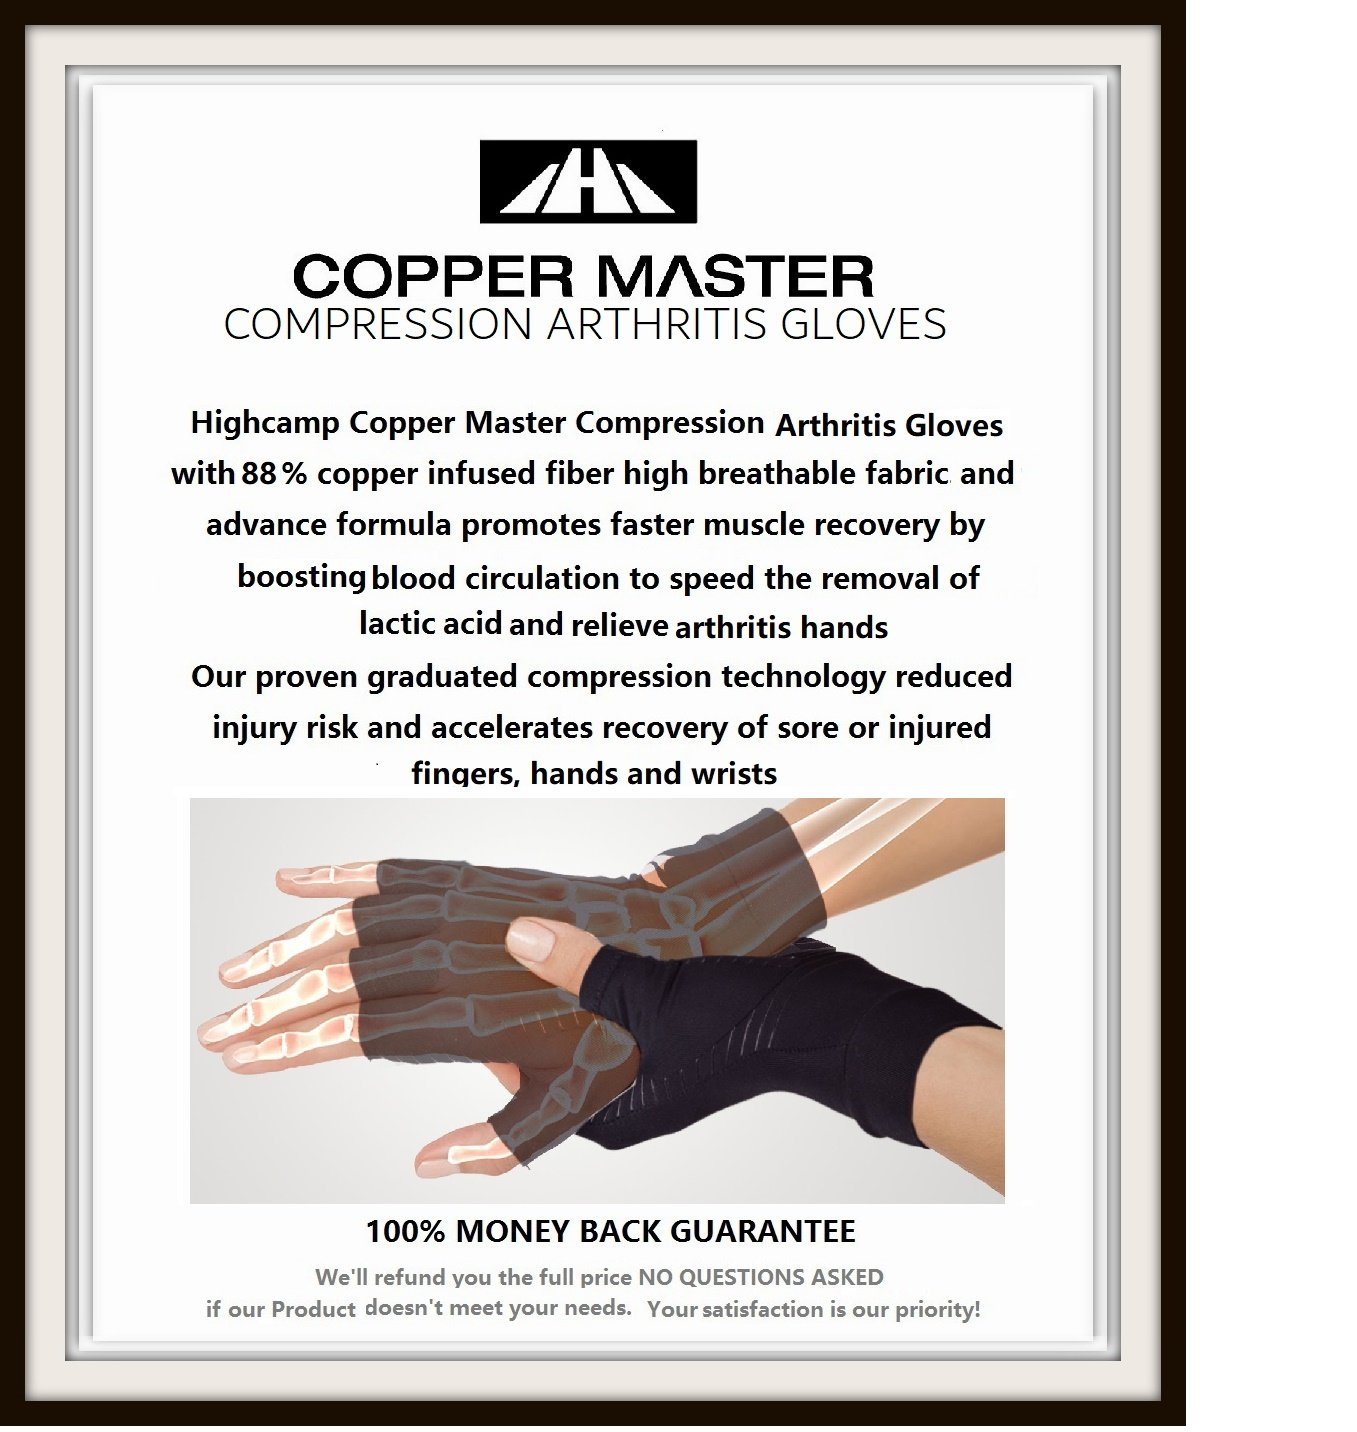 Arthritis Gloves Women- Copper Gloves For Men- Compression Gloves Recovery & Relieve For Arthritis, RSI, Carpal Tunnel, Swollen Hands, Tendonitis, Everyday Support & More- Fingerless Gloves/ Black/ L by Highcamp (Image #7)